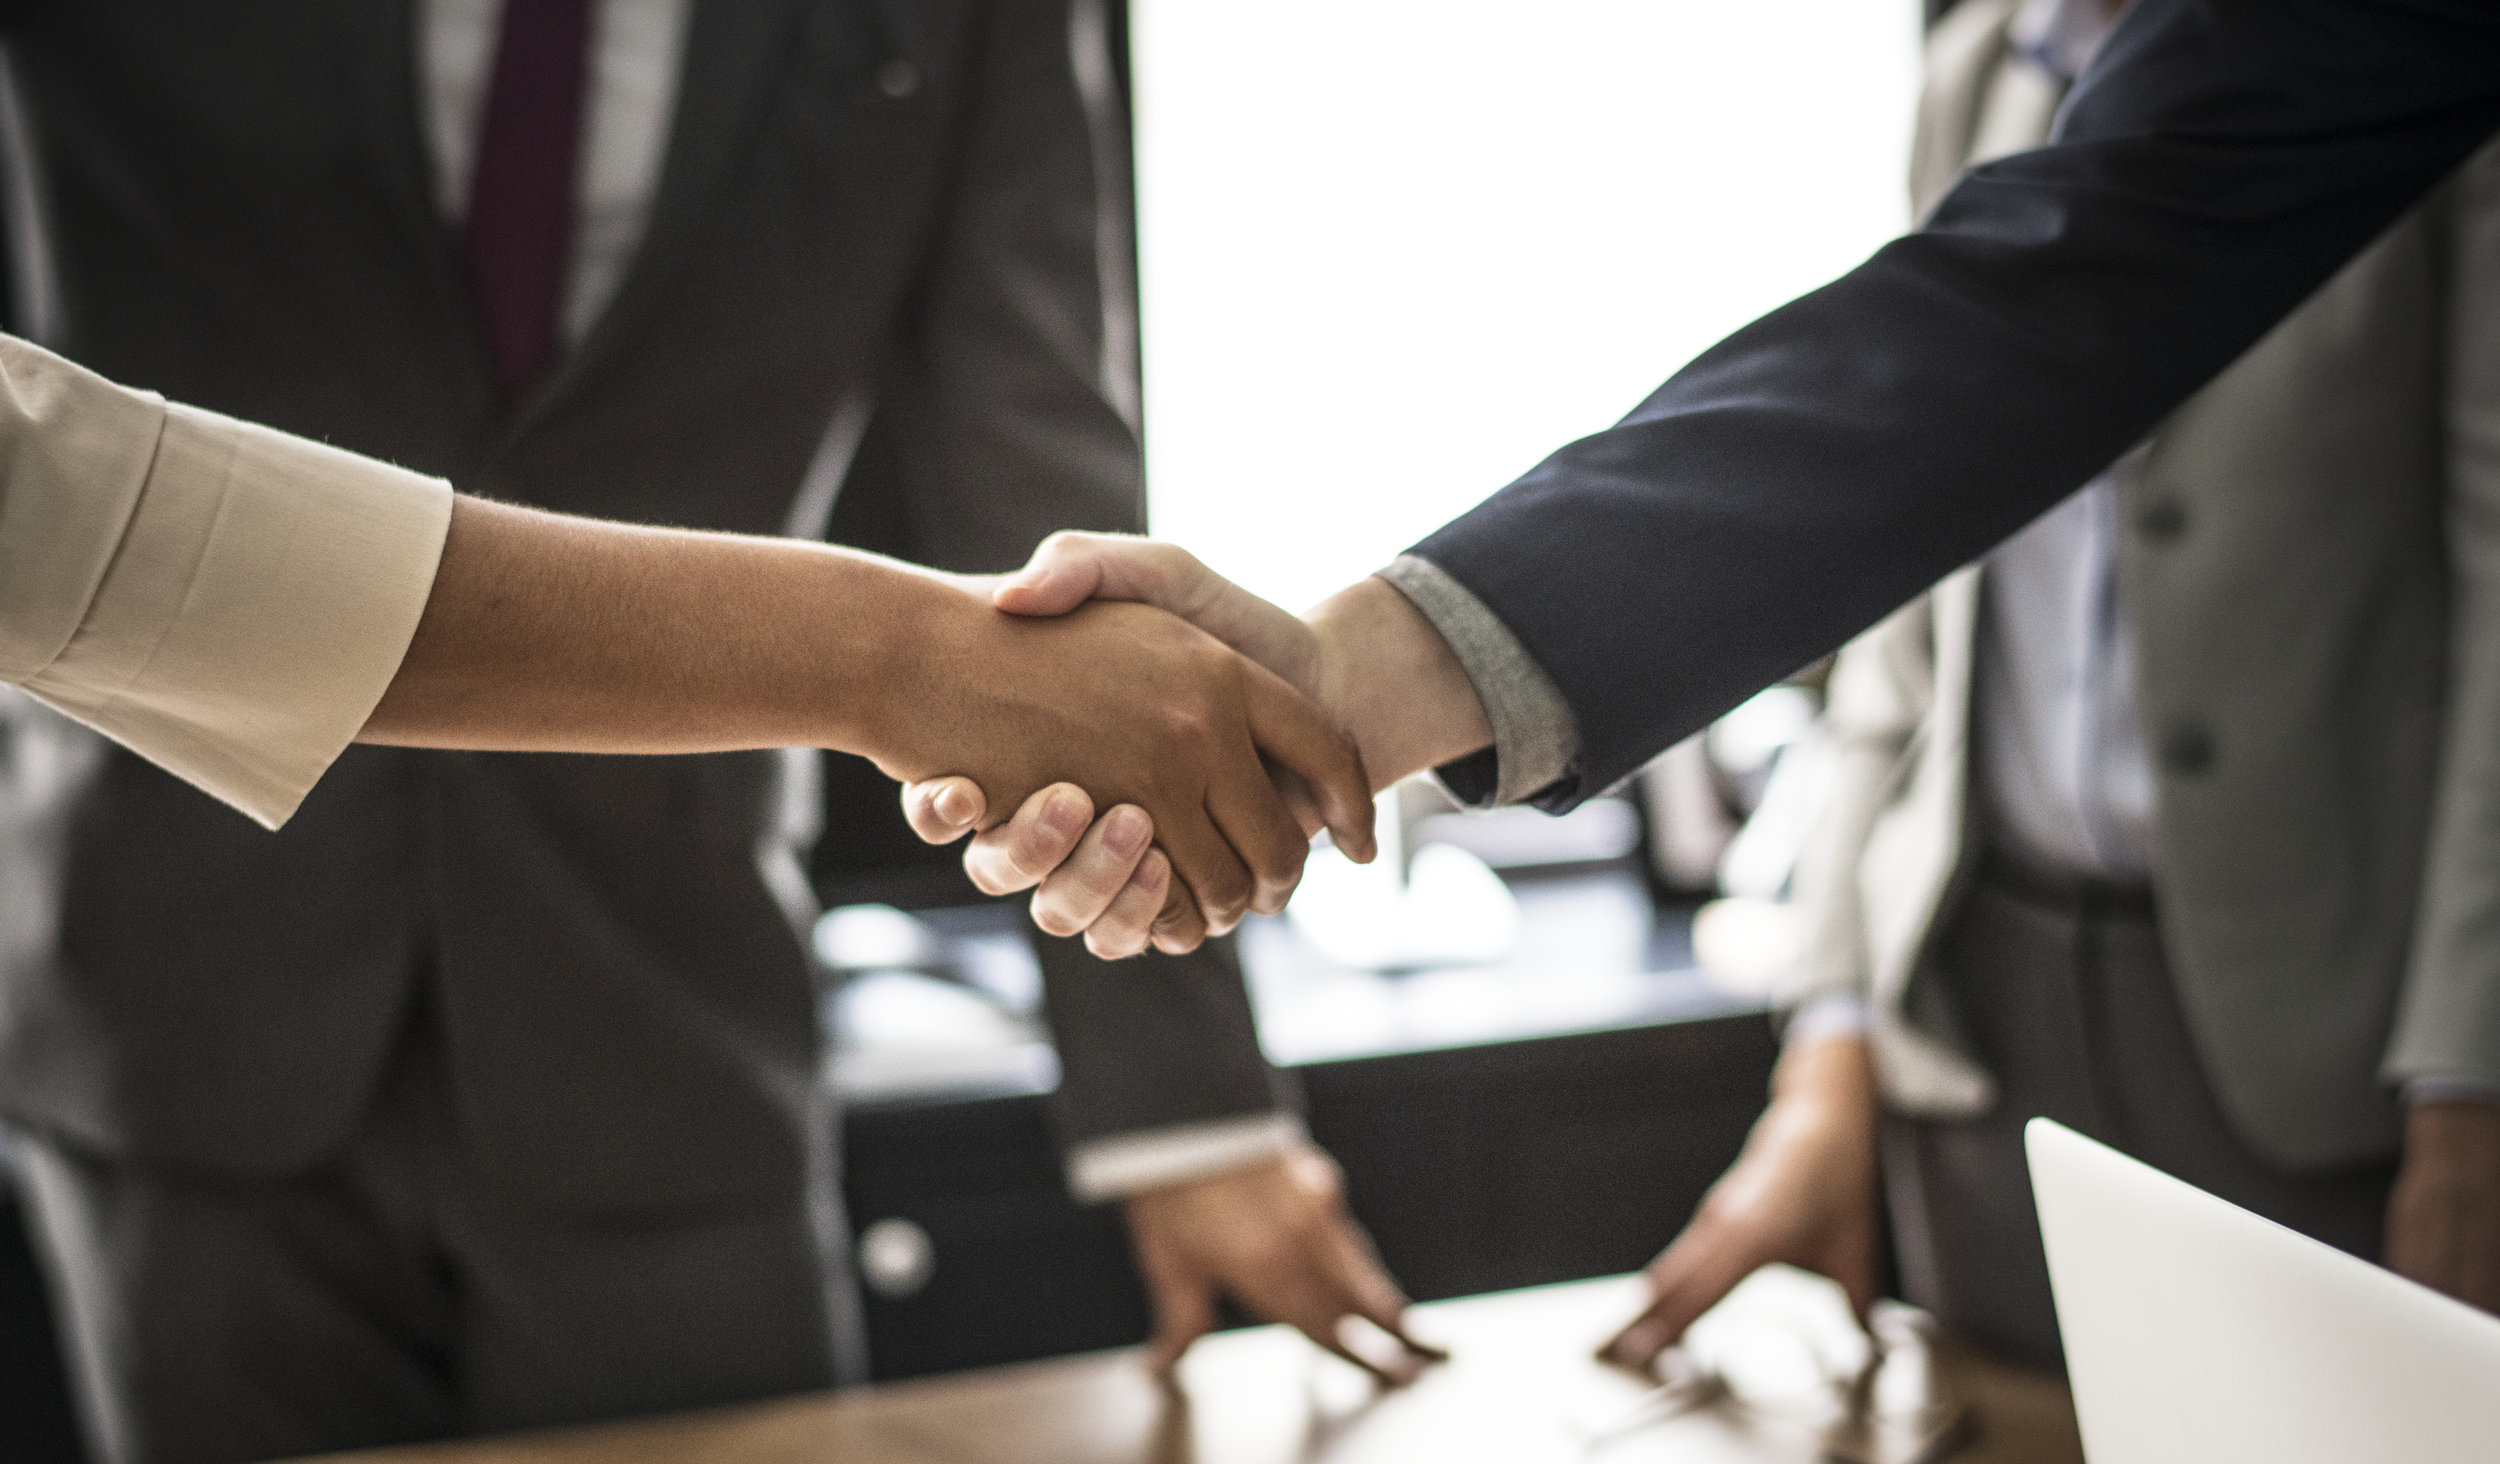 efficient connections - We contact our roster on a regular basis, increasing the odds we catch entrepreneurs when they are seeking new opportunities. We aggregate questions from interested entrepreneurs and train them on licensing IP from a university, making it easy to introduce qualified and interested CEOs to universities.